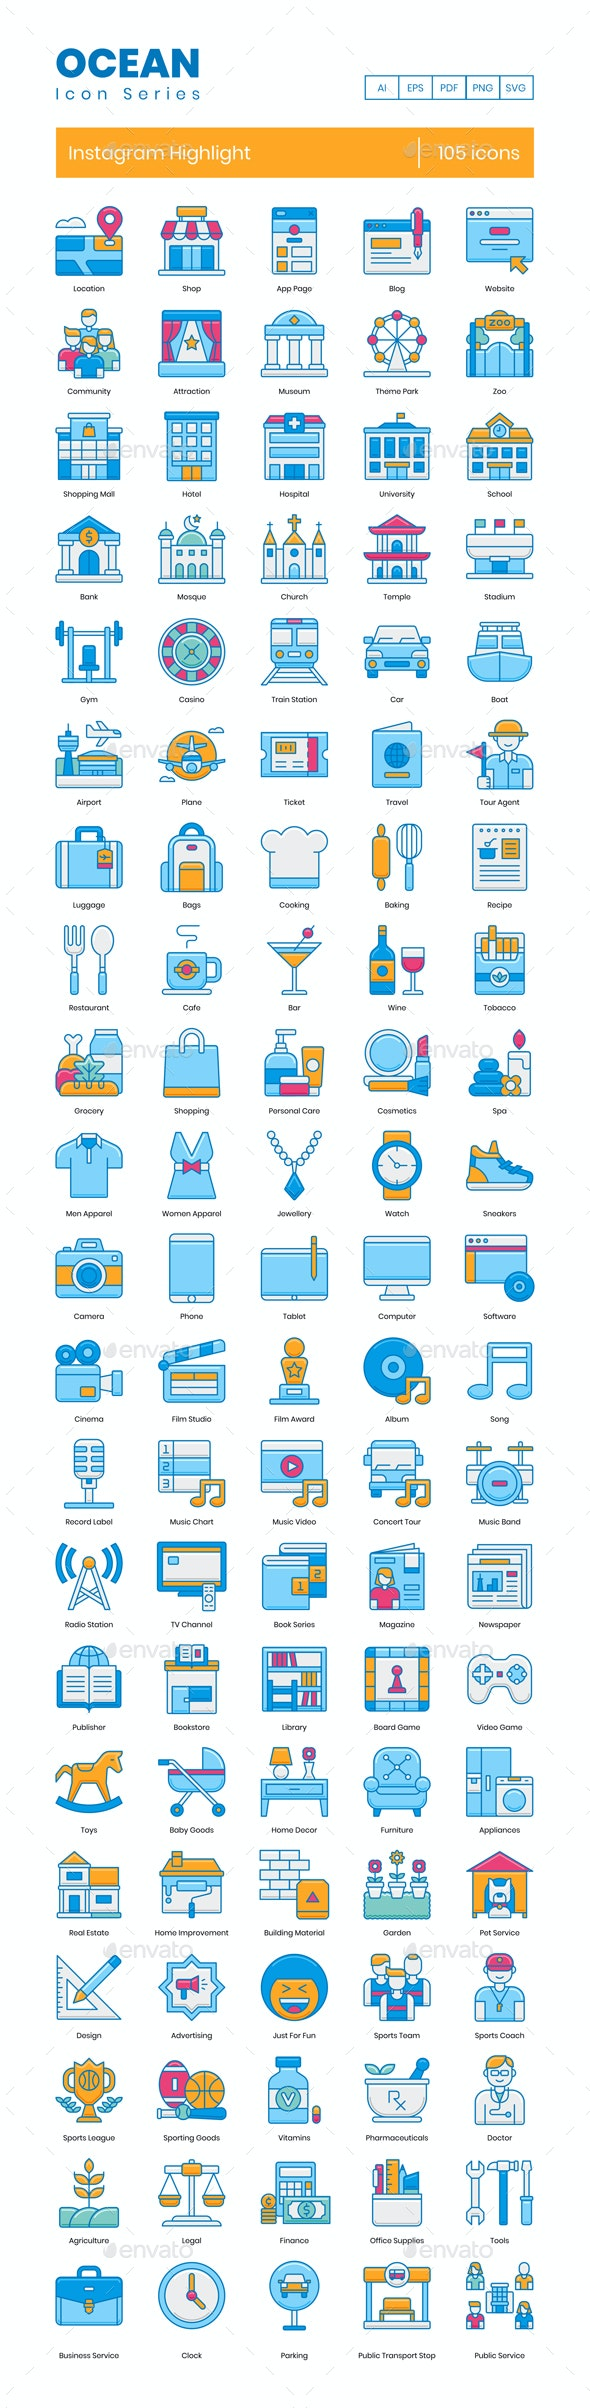 Instagram Highlight Icons - Icons